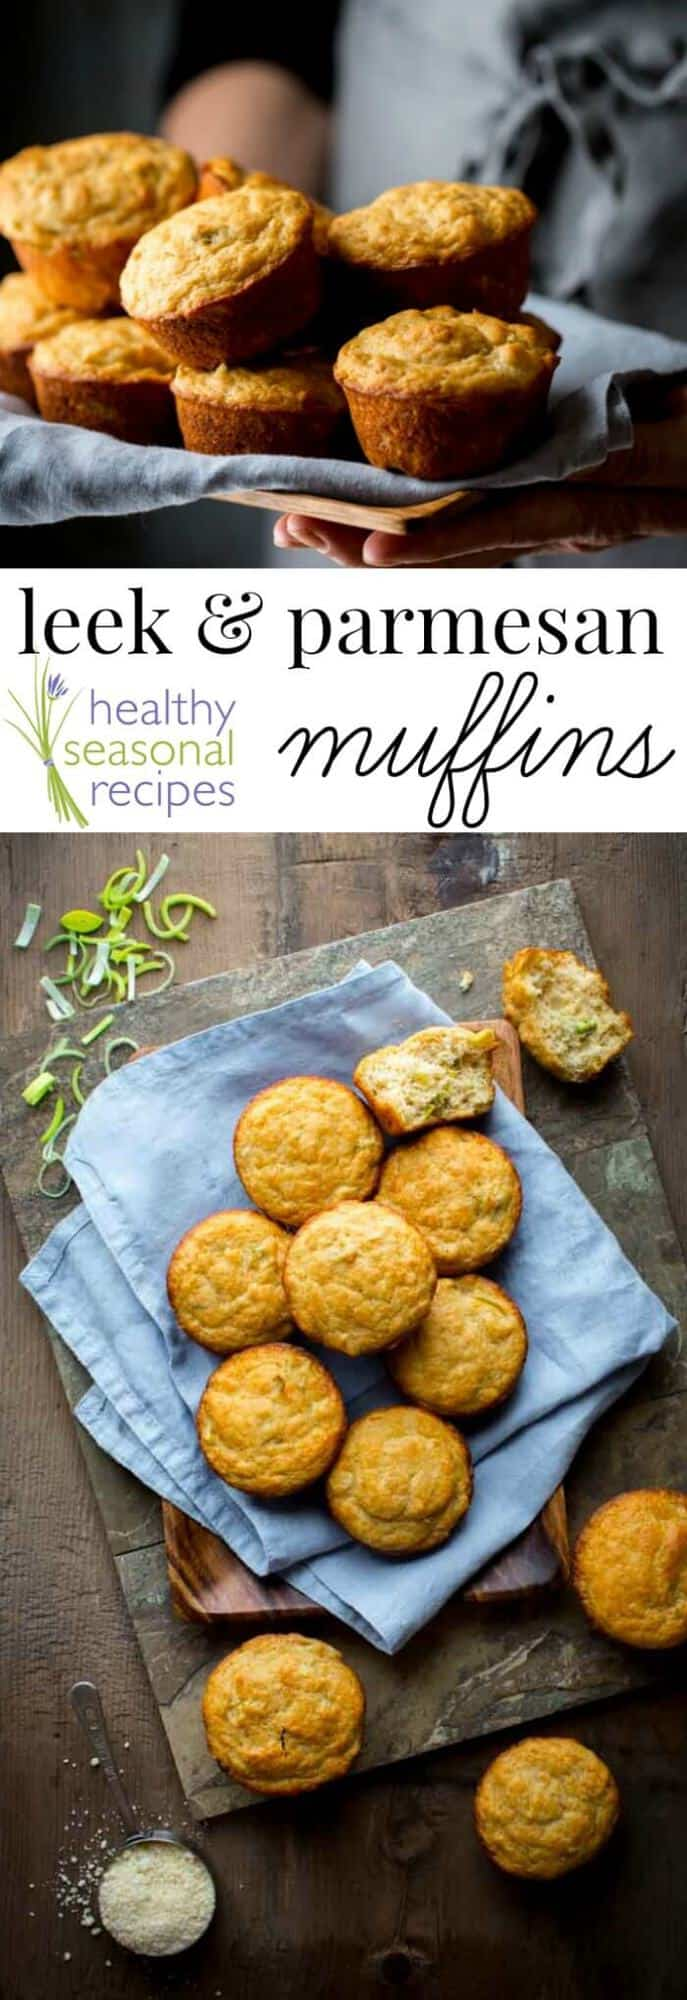 how to clean a leek and a recipe for leek and parmesan muffins ...